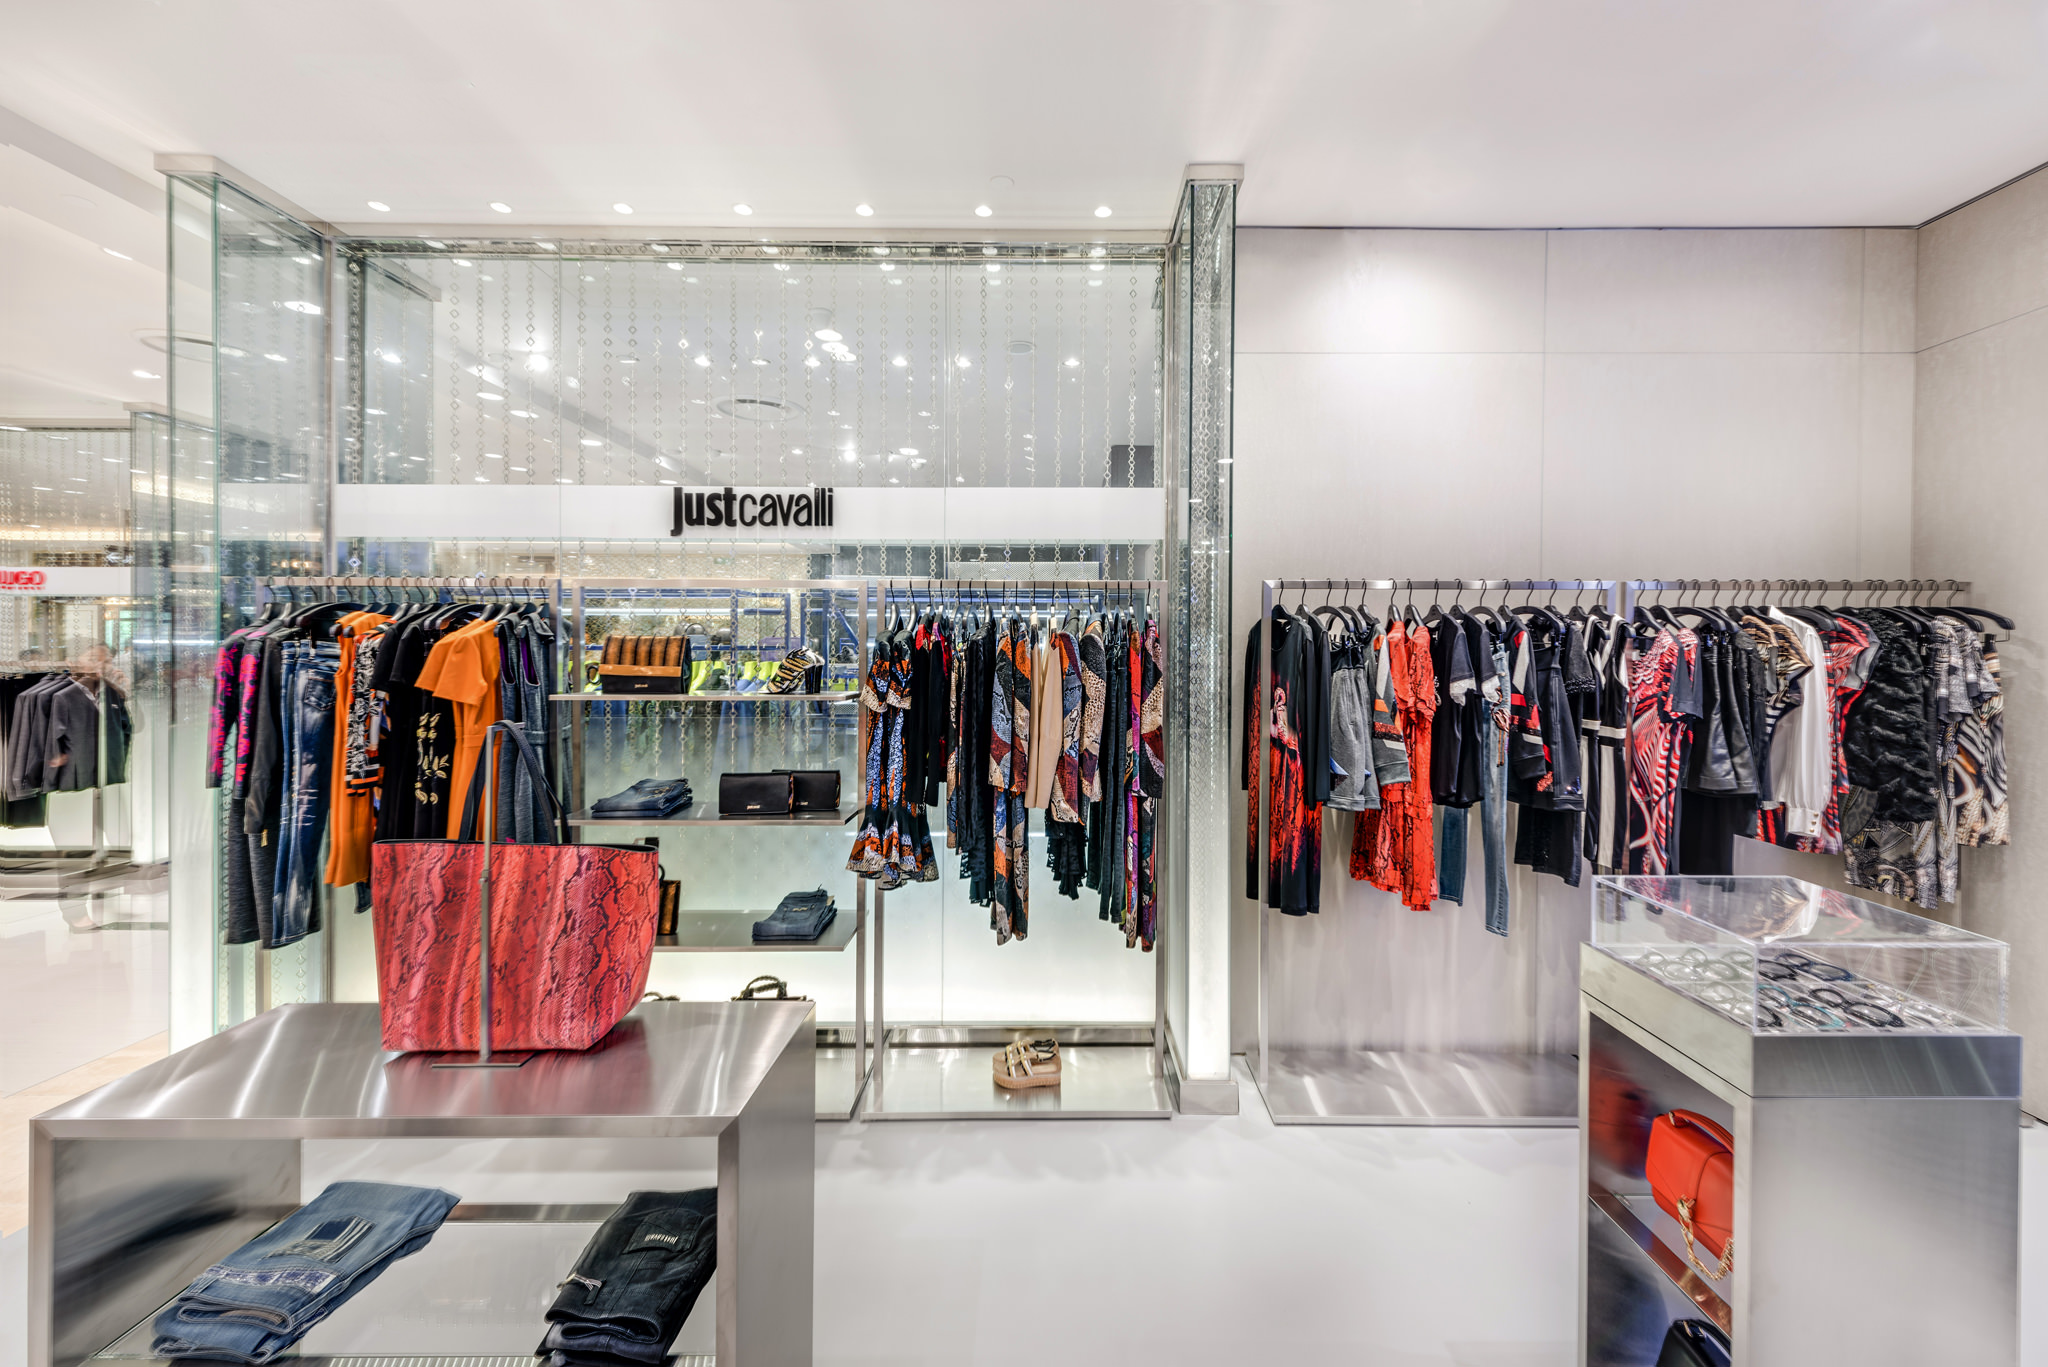 20160729 - Just Cavali - HCM - Commercial - Interior - Store - Retouch 0008.jpg